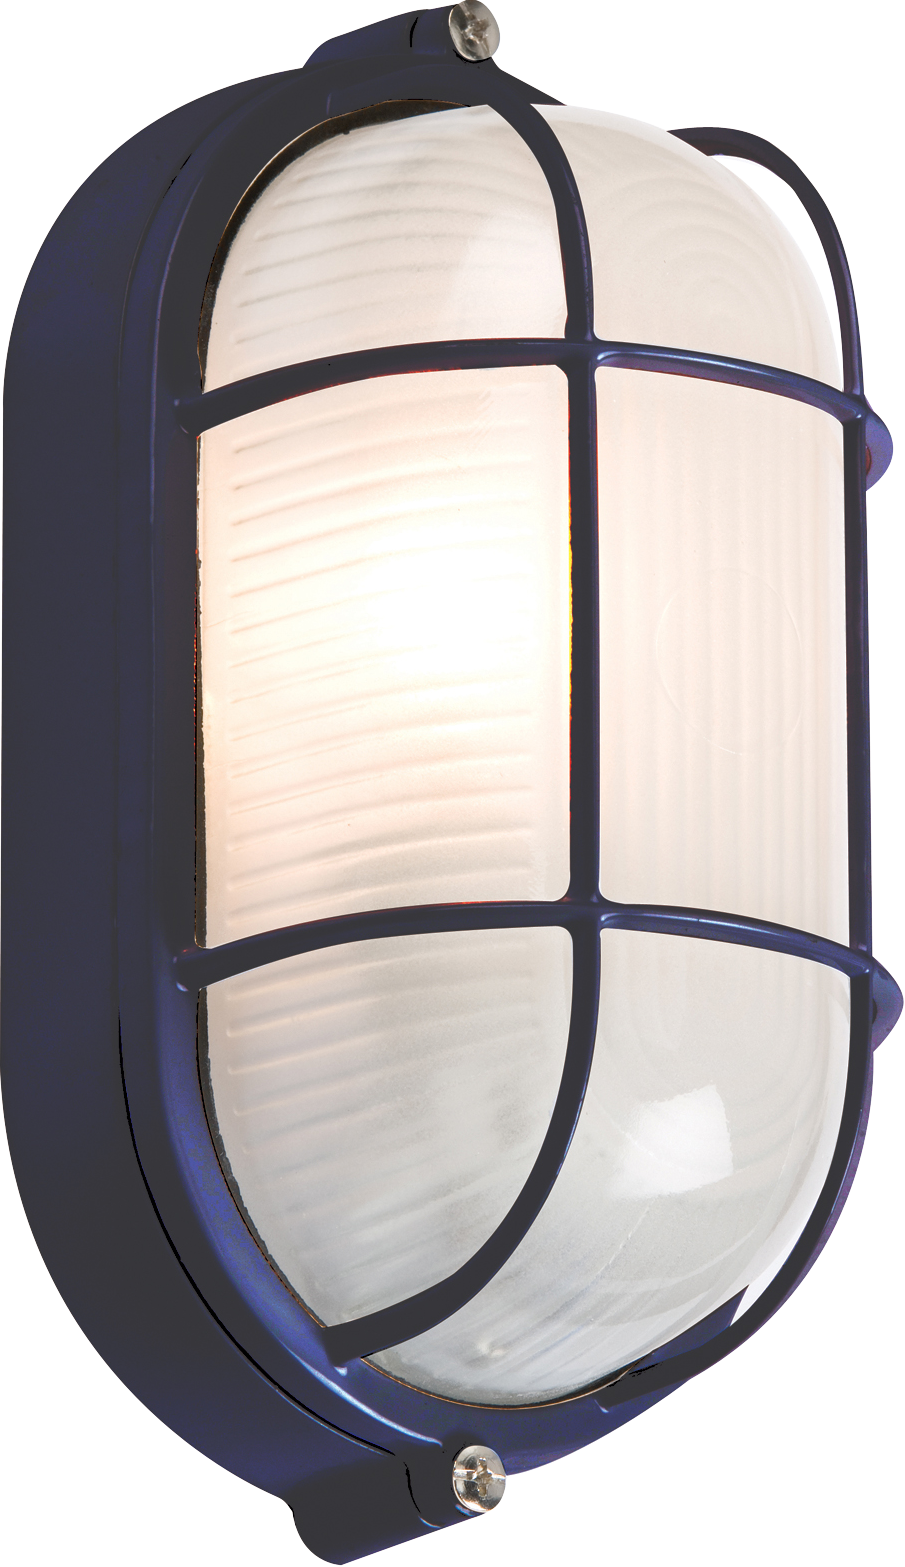 230V IP54 60W Black Oval Bulkhead with wire Guard and Glass Diffuser